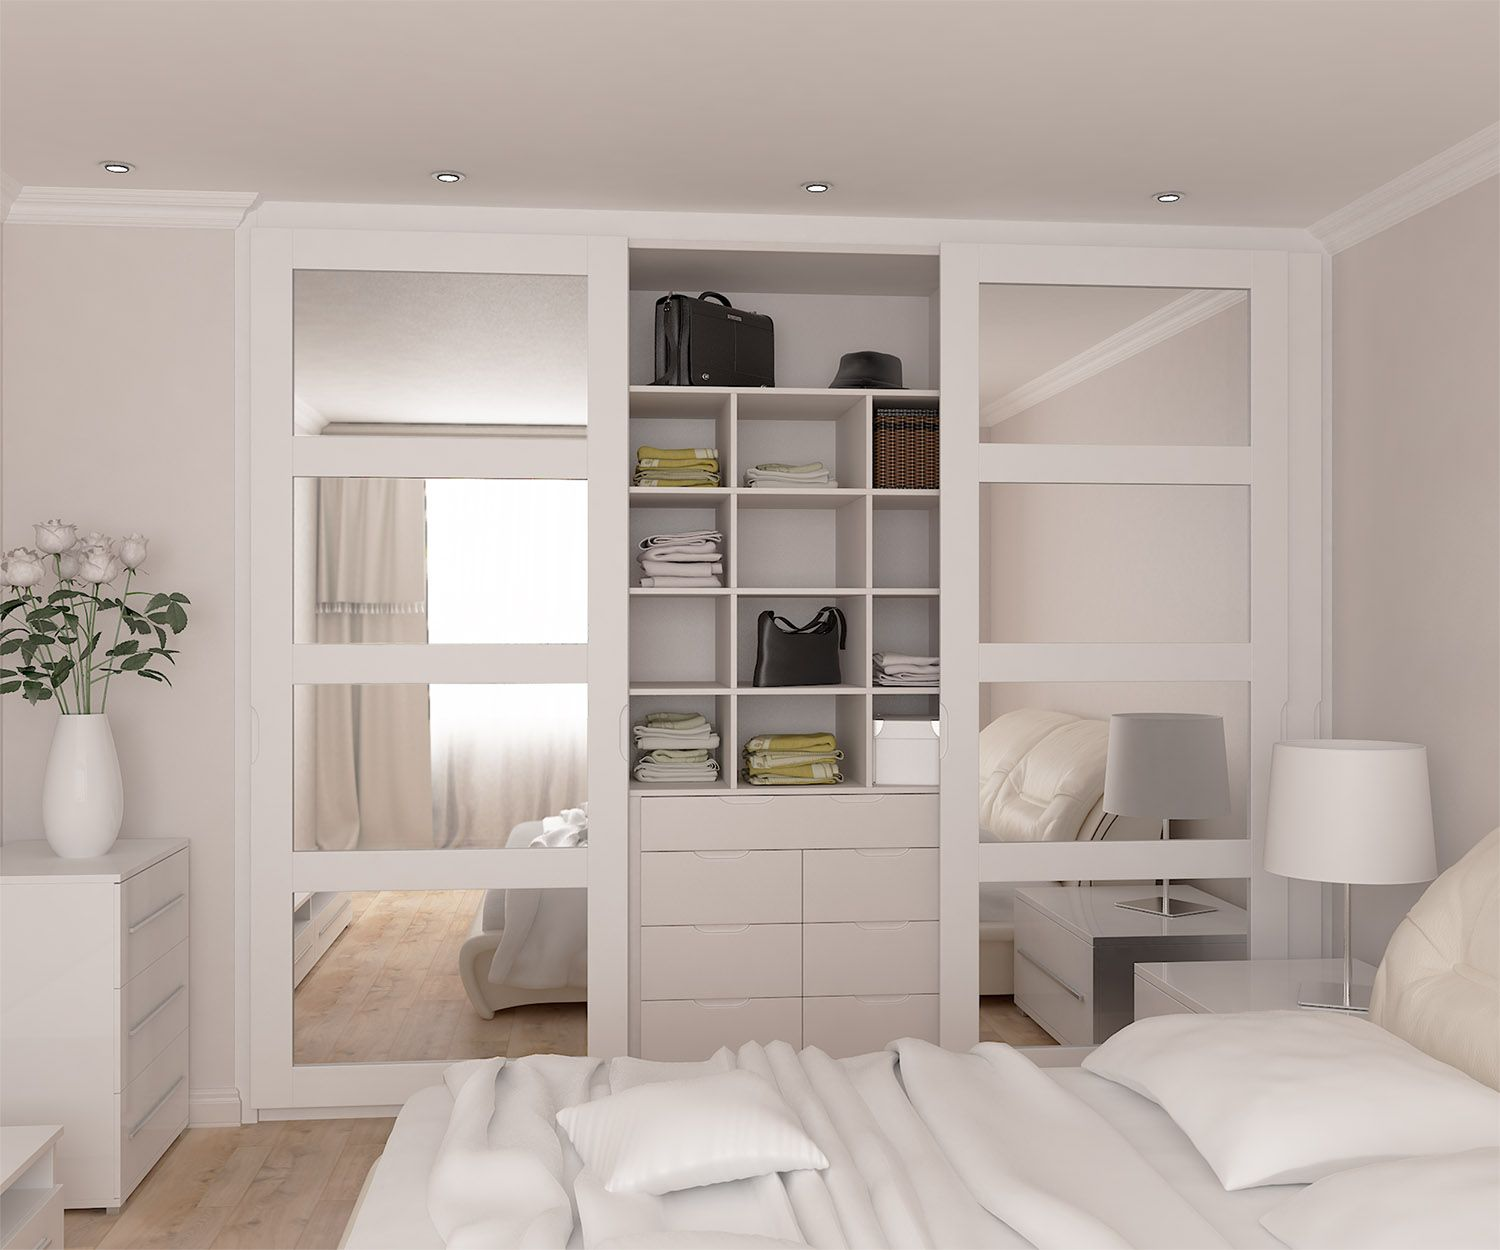 Attirant Create A New Look For Your Room With These Closet Door Ideas And Design  Ikea,